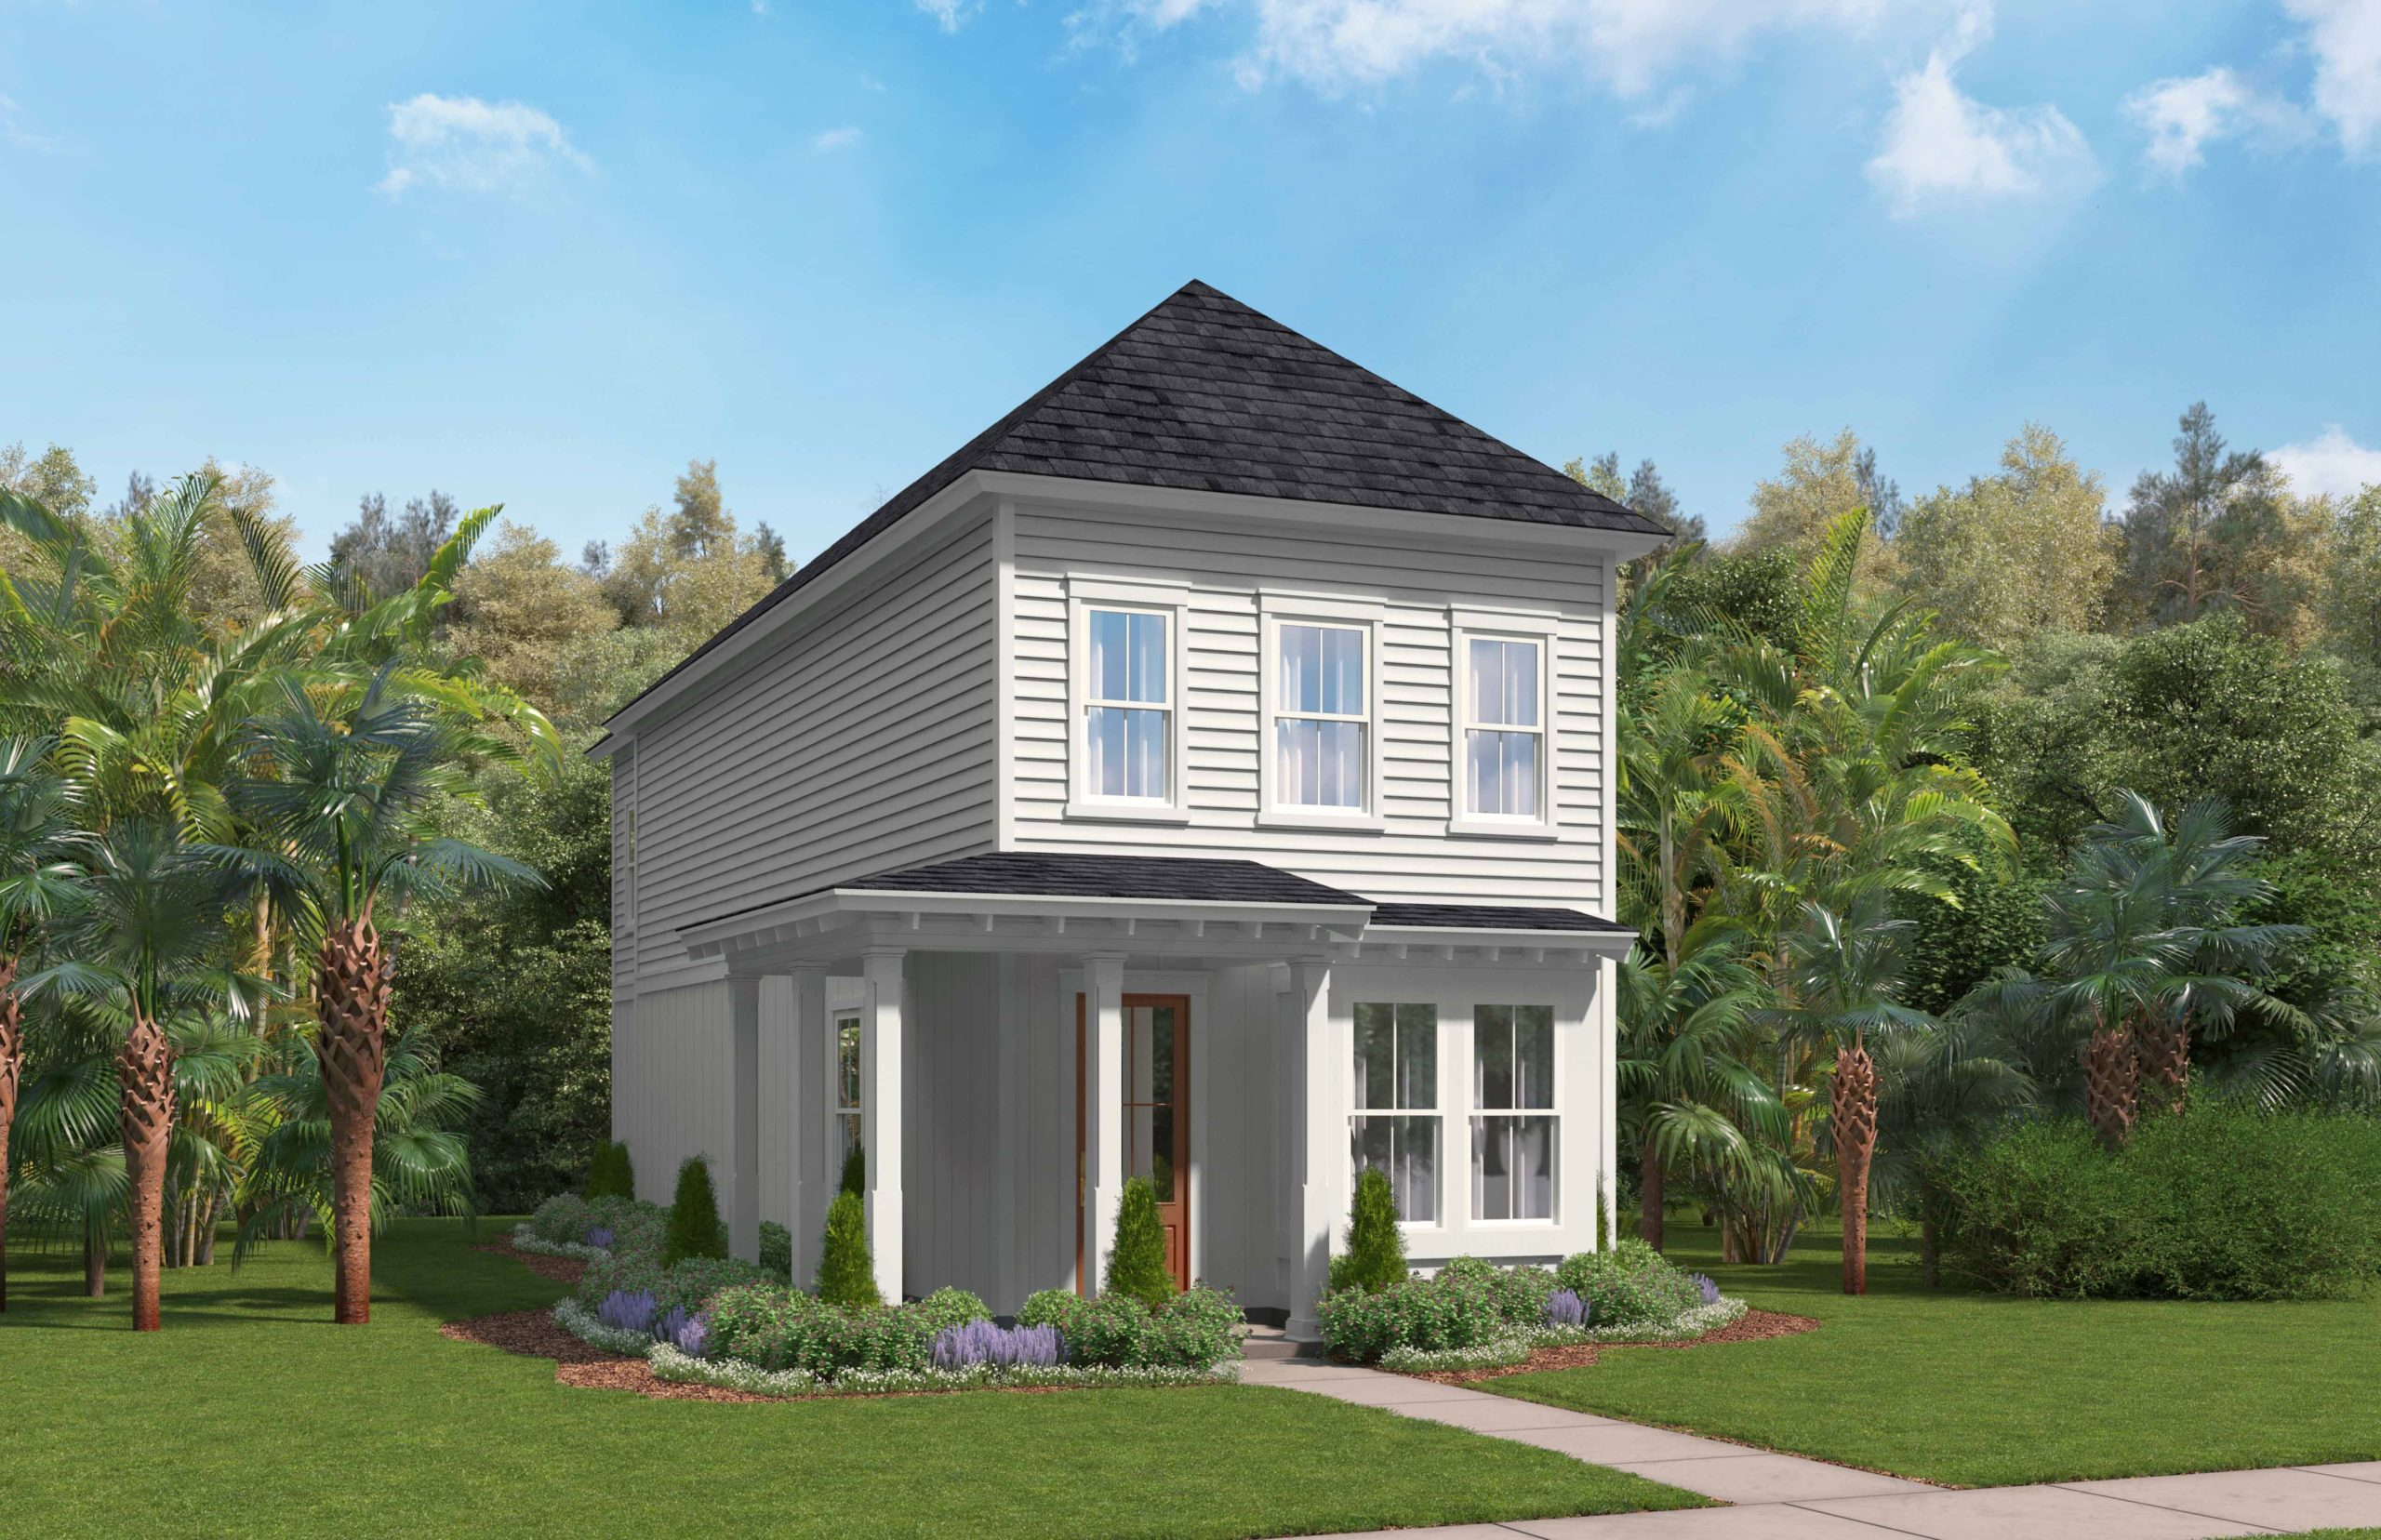 263 Summers Drive   The Jasmine by Stanley Martin Homes, New Homes in South Carolina